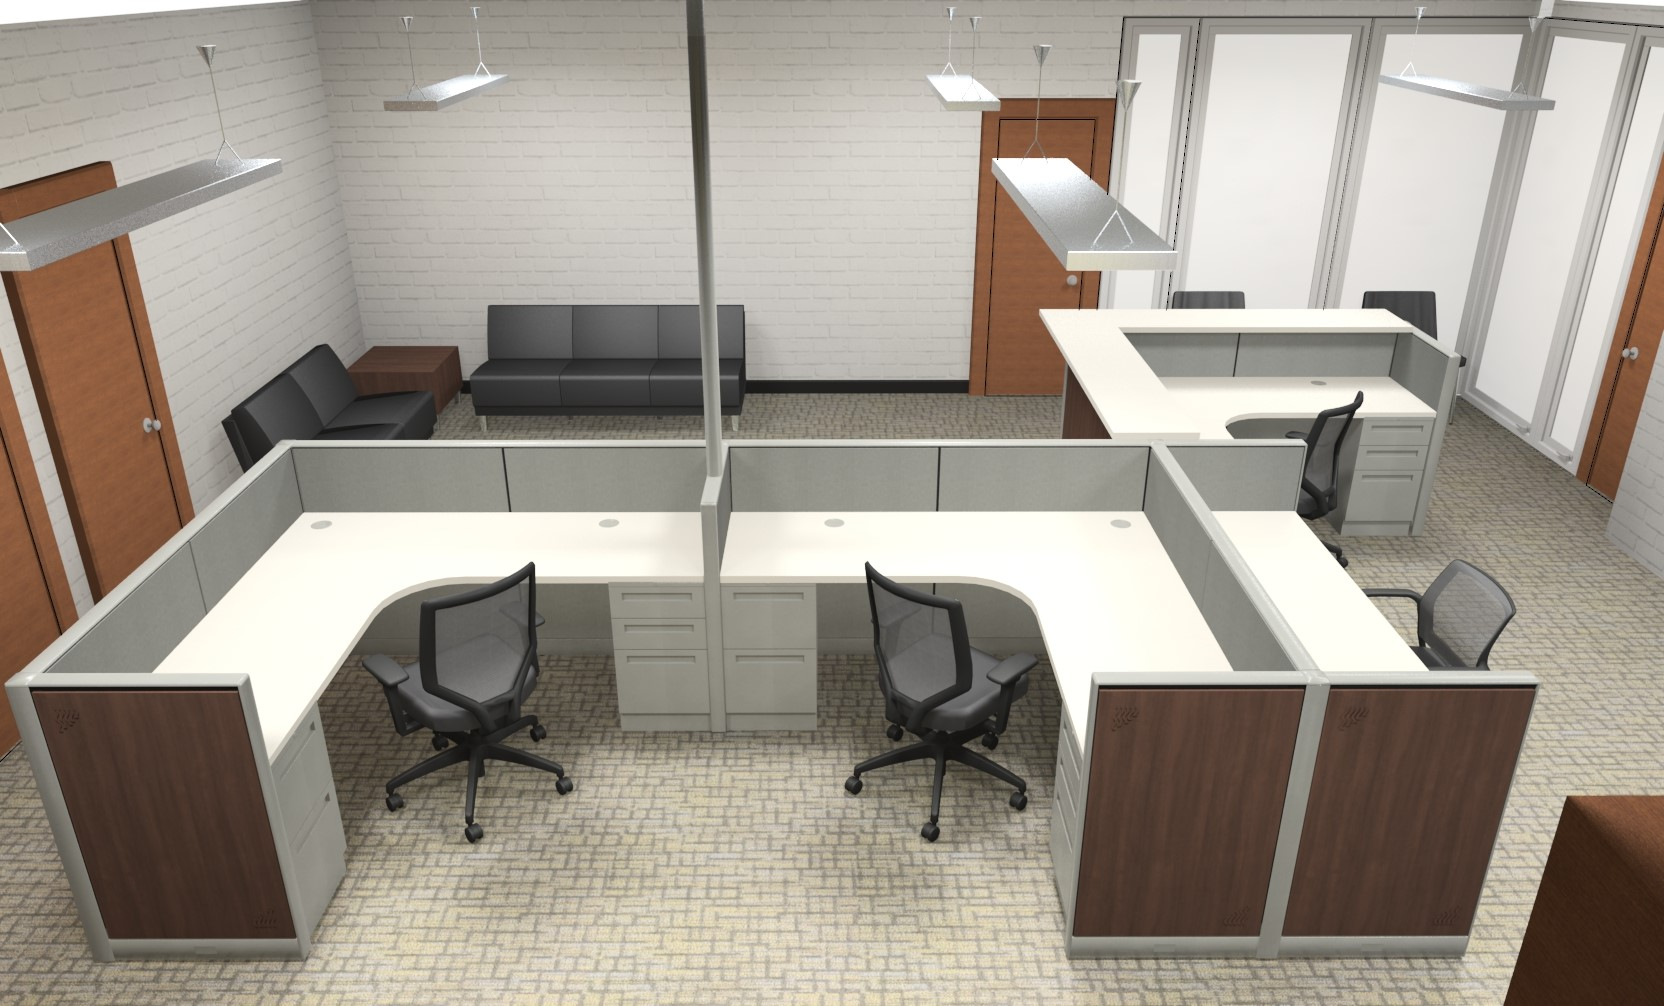 EBOE Herbert Hoover Middle Main Office Furniture Plan13d3 From Canton.jpg